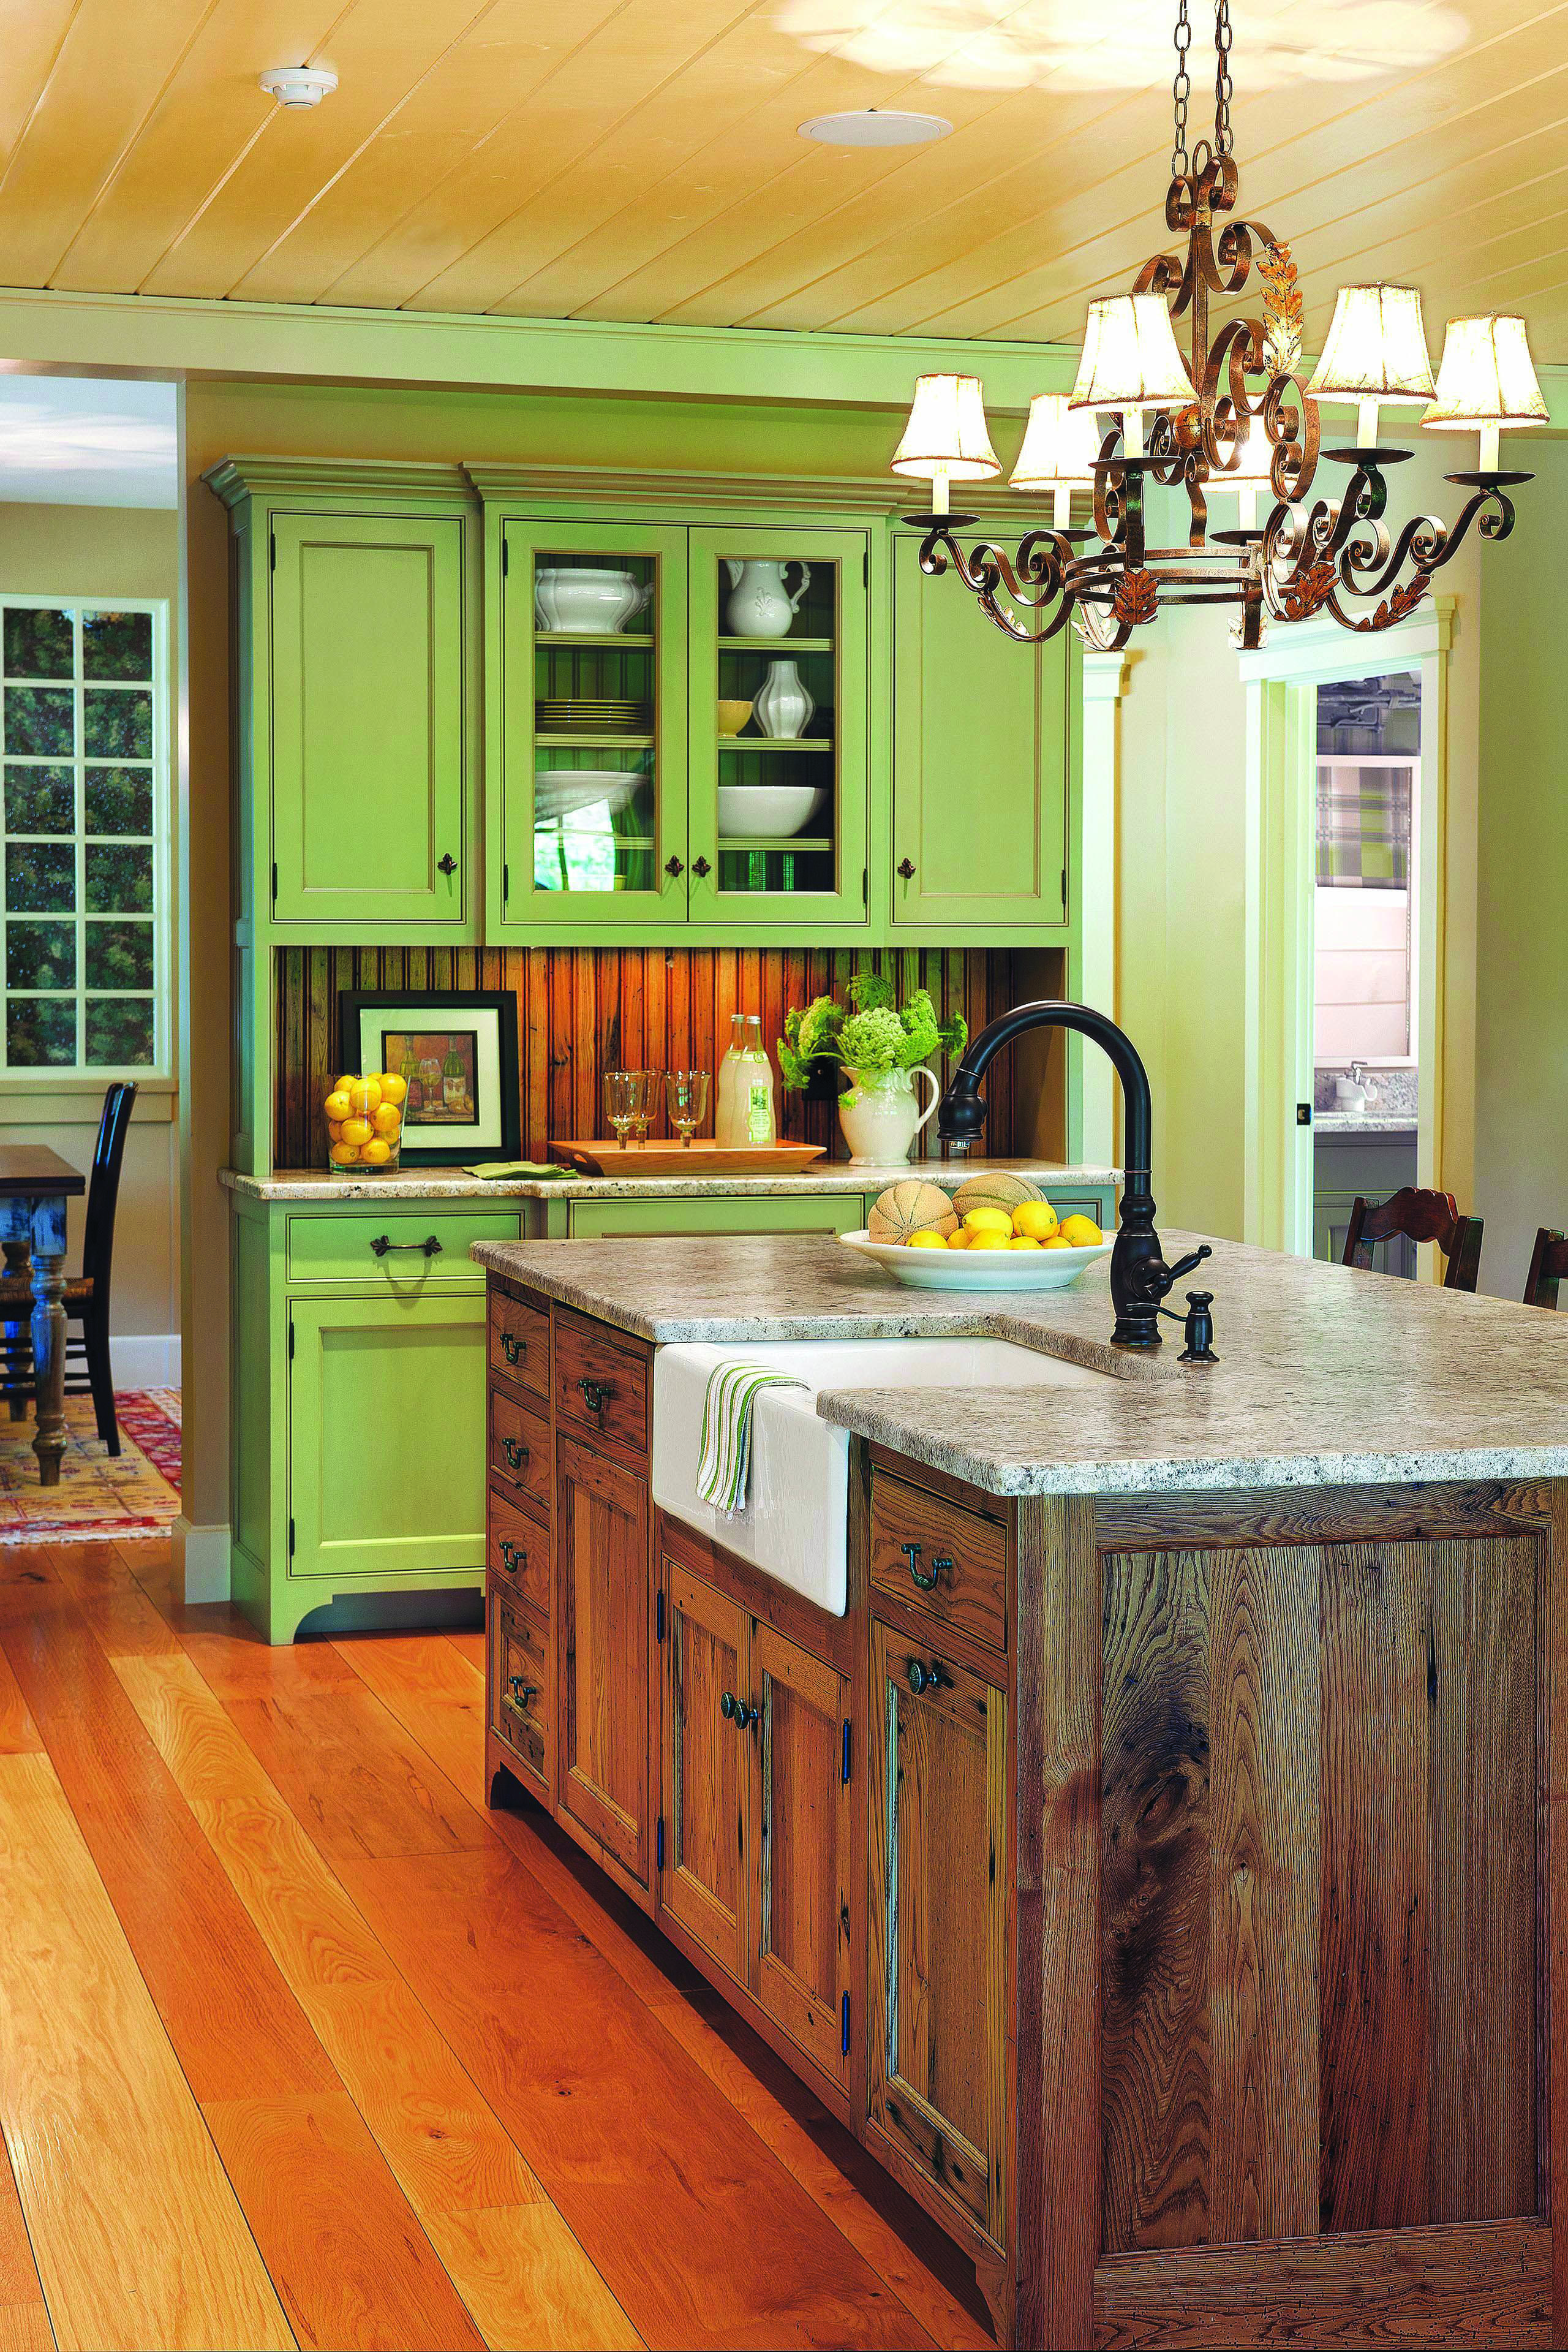 Outstanding Cooking area Island destinations With Sinks